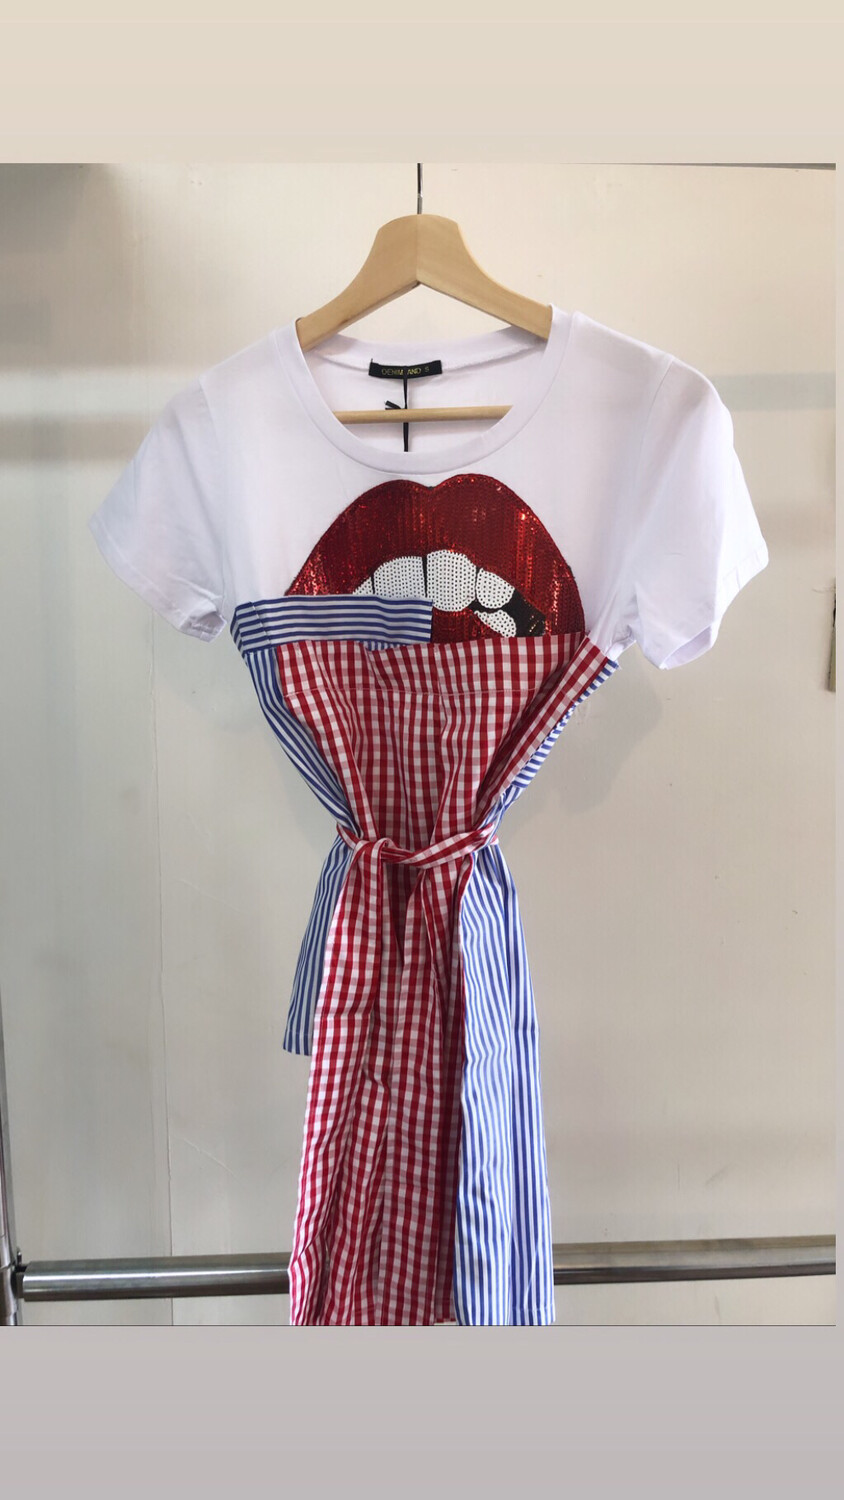 Irregular Lip Plaid T-shirt